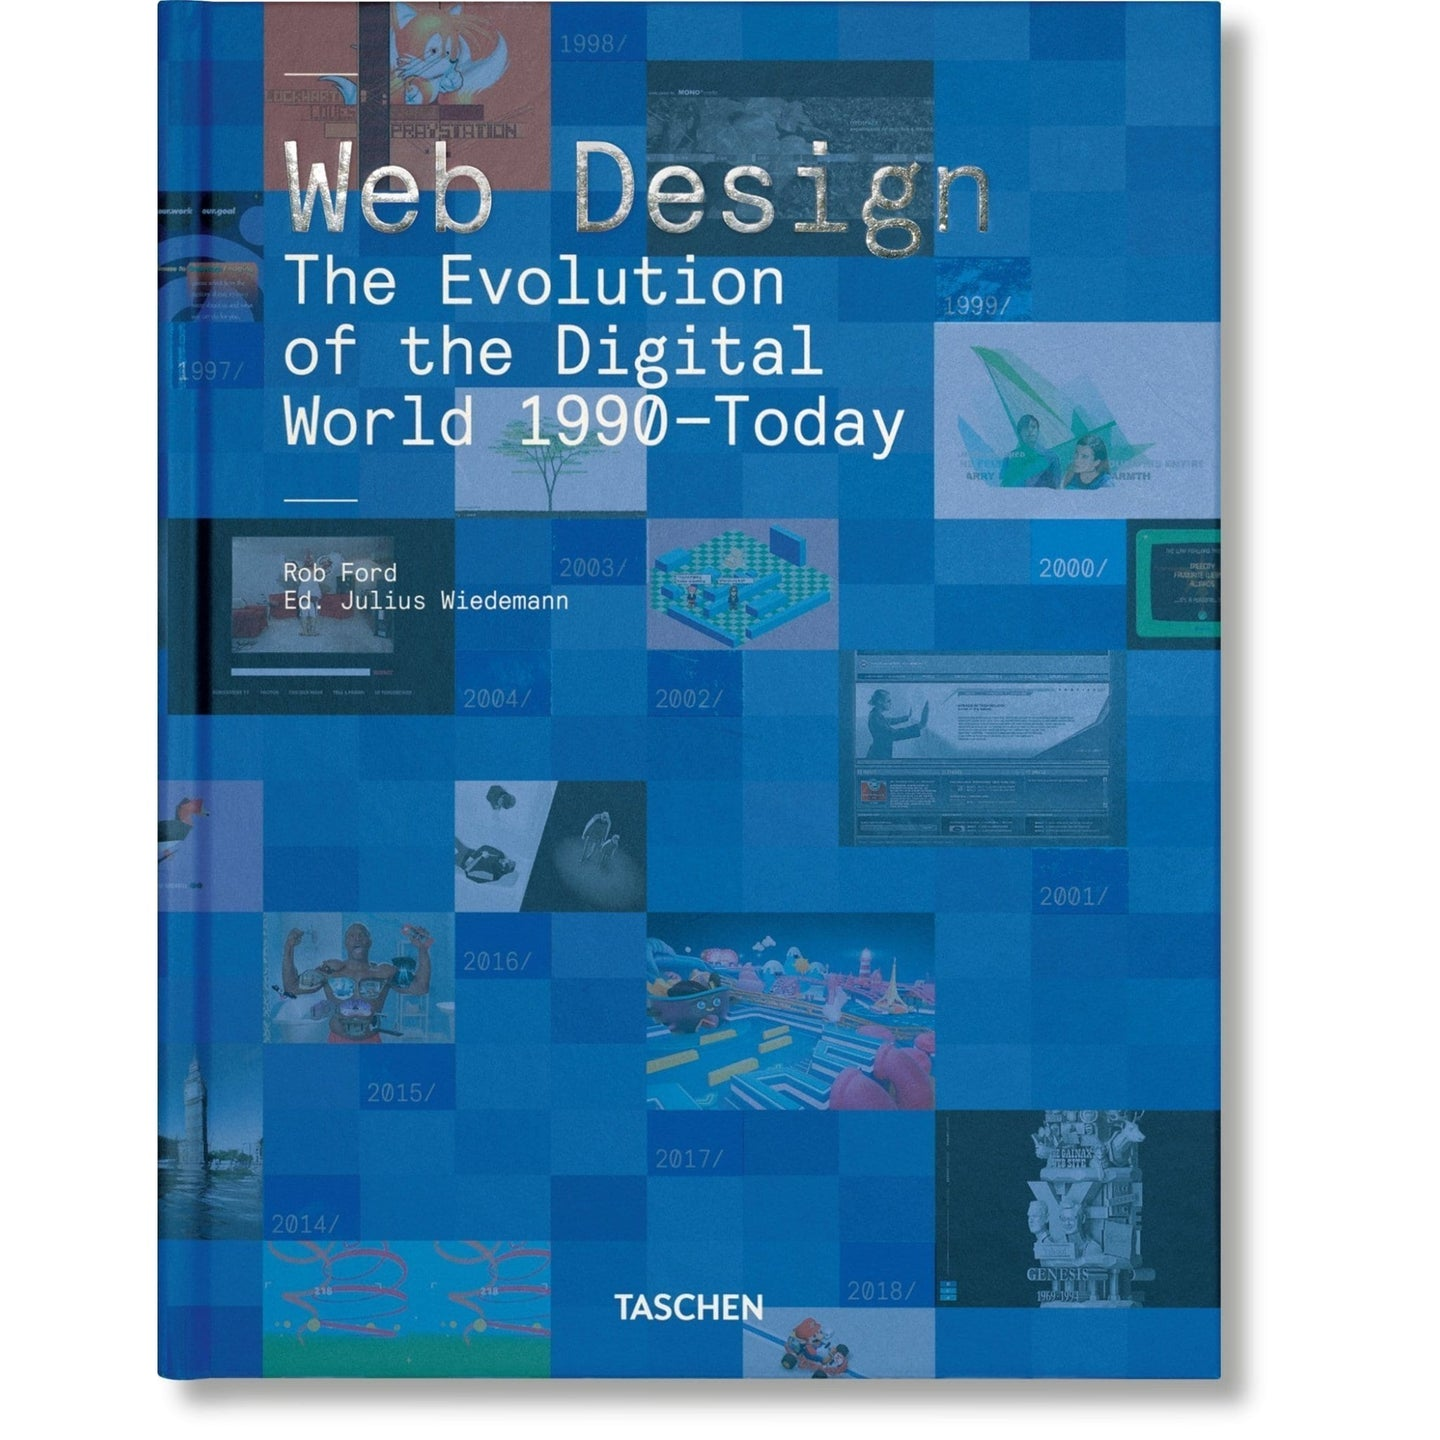 Web Design - The Evolution of the Digital World 1990-Today / Neighborhood Goods